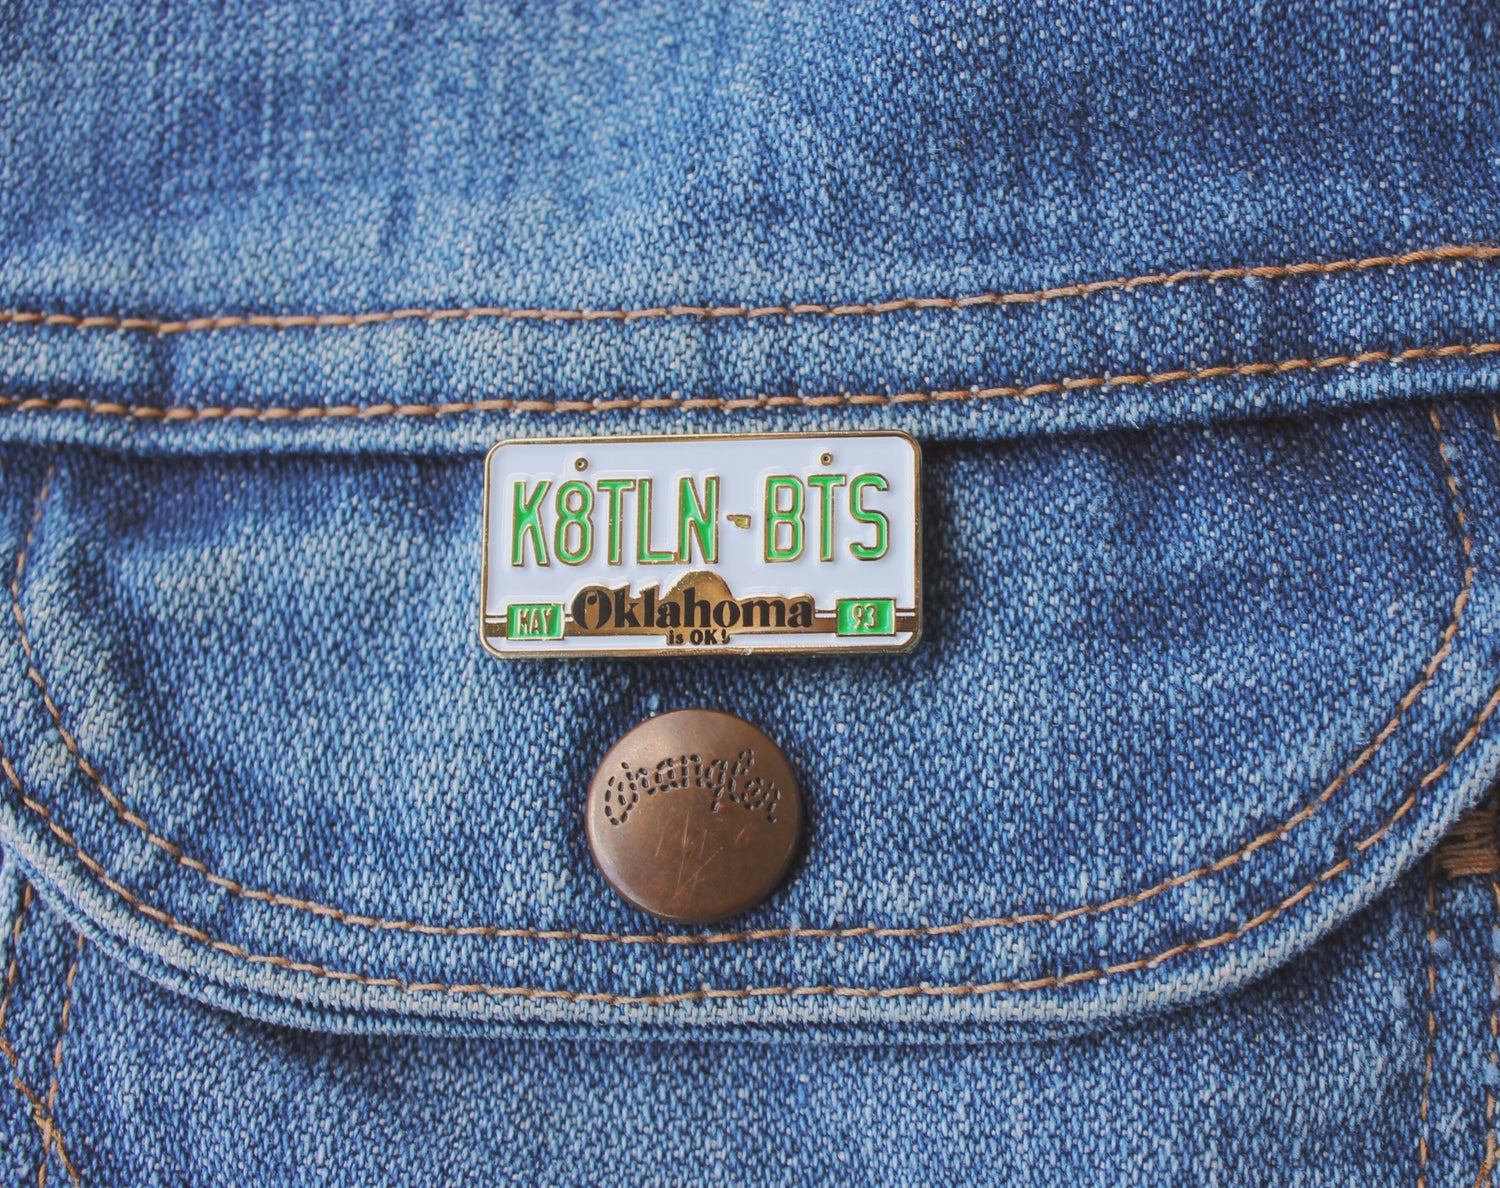 Image of K8TLIN BTS License Plate Pin